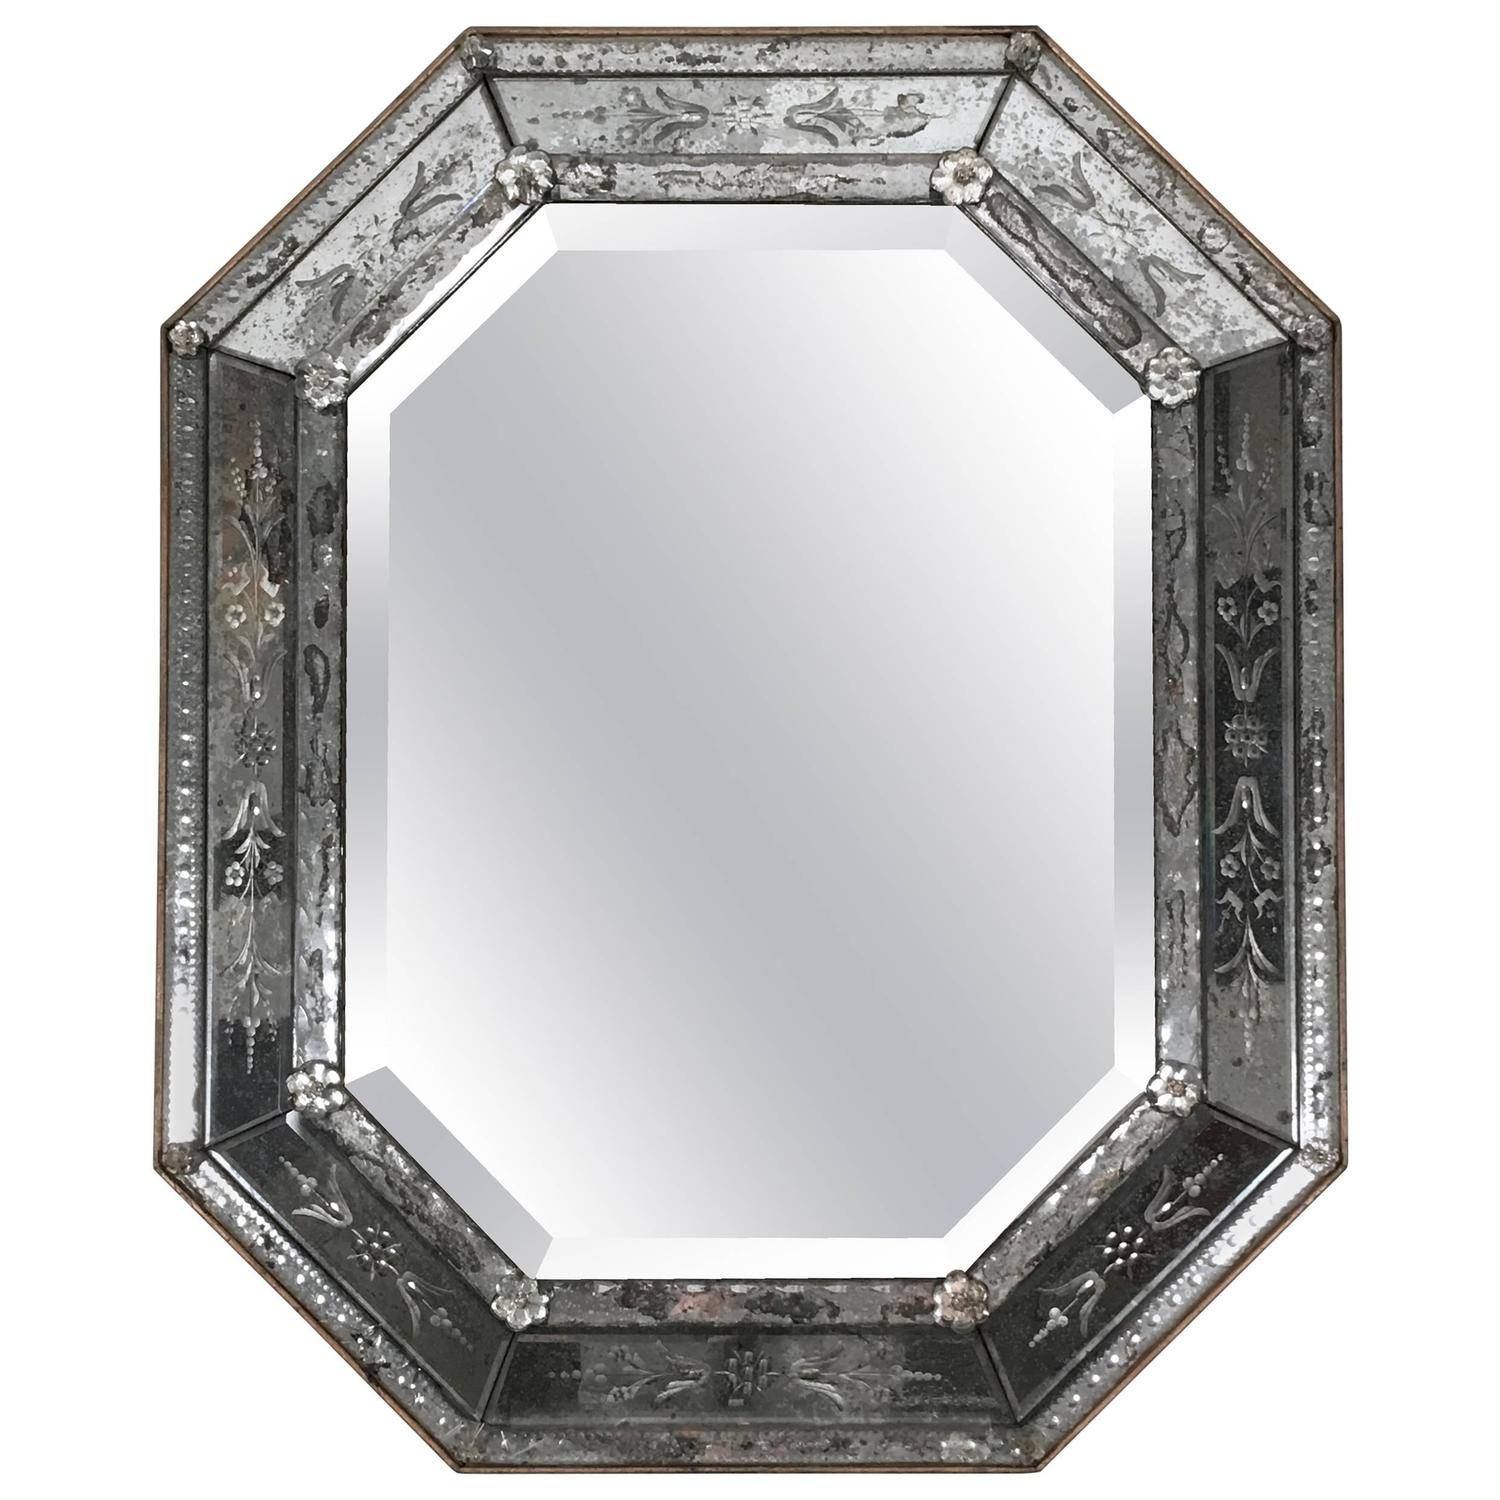 Venetian Etched Glass Octagonal Mirror At 1Stdibs Intended For Square Venetian Mirrors (View 22 of 25)